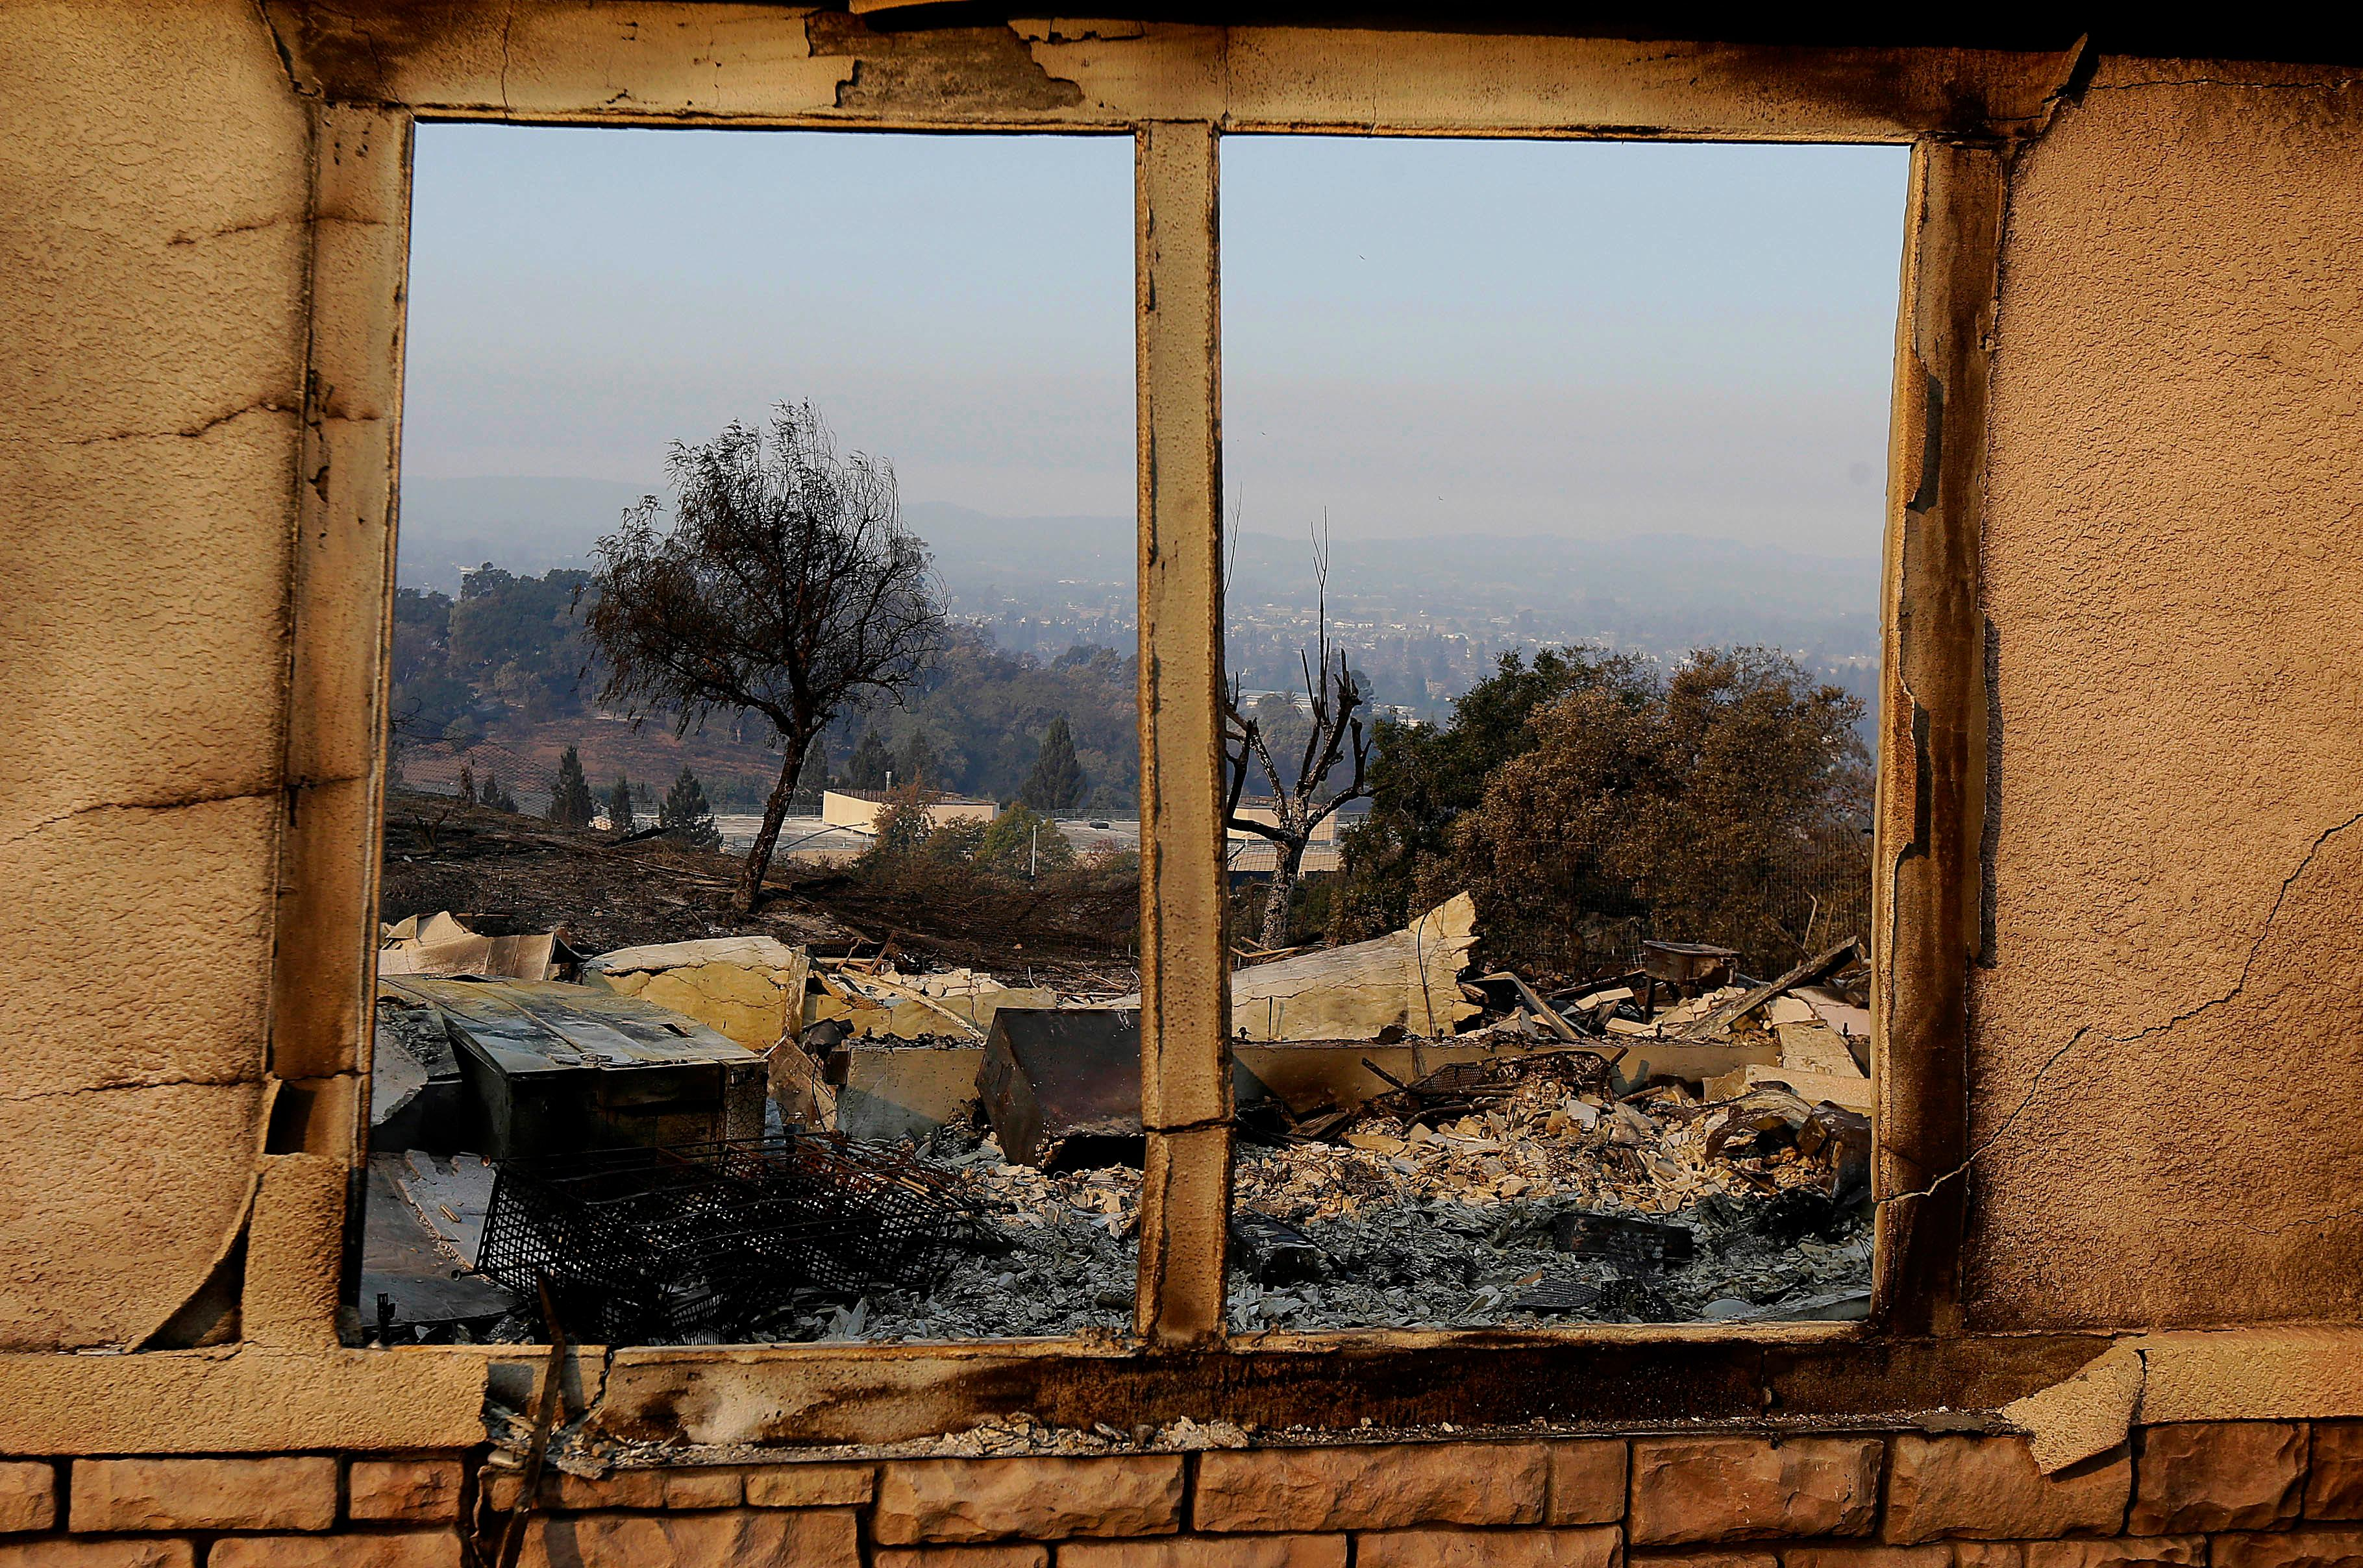 An exterior window frames a home destroyed by fires in Santa Rosa, Calif., Thursday, Oct. 12, 2017. Gusting winds and dry air forecast for Thursday could drive the next wave of devastating wildfires that are already well on their way to becoming the deadliest and most destructive in California history. (AP Photo/Jeff Chiu)